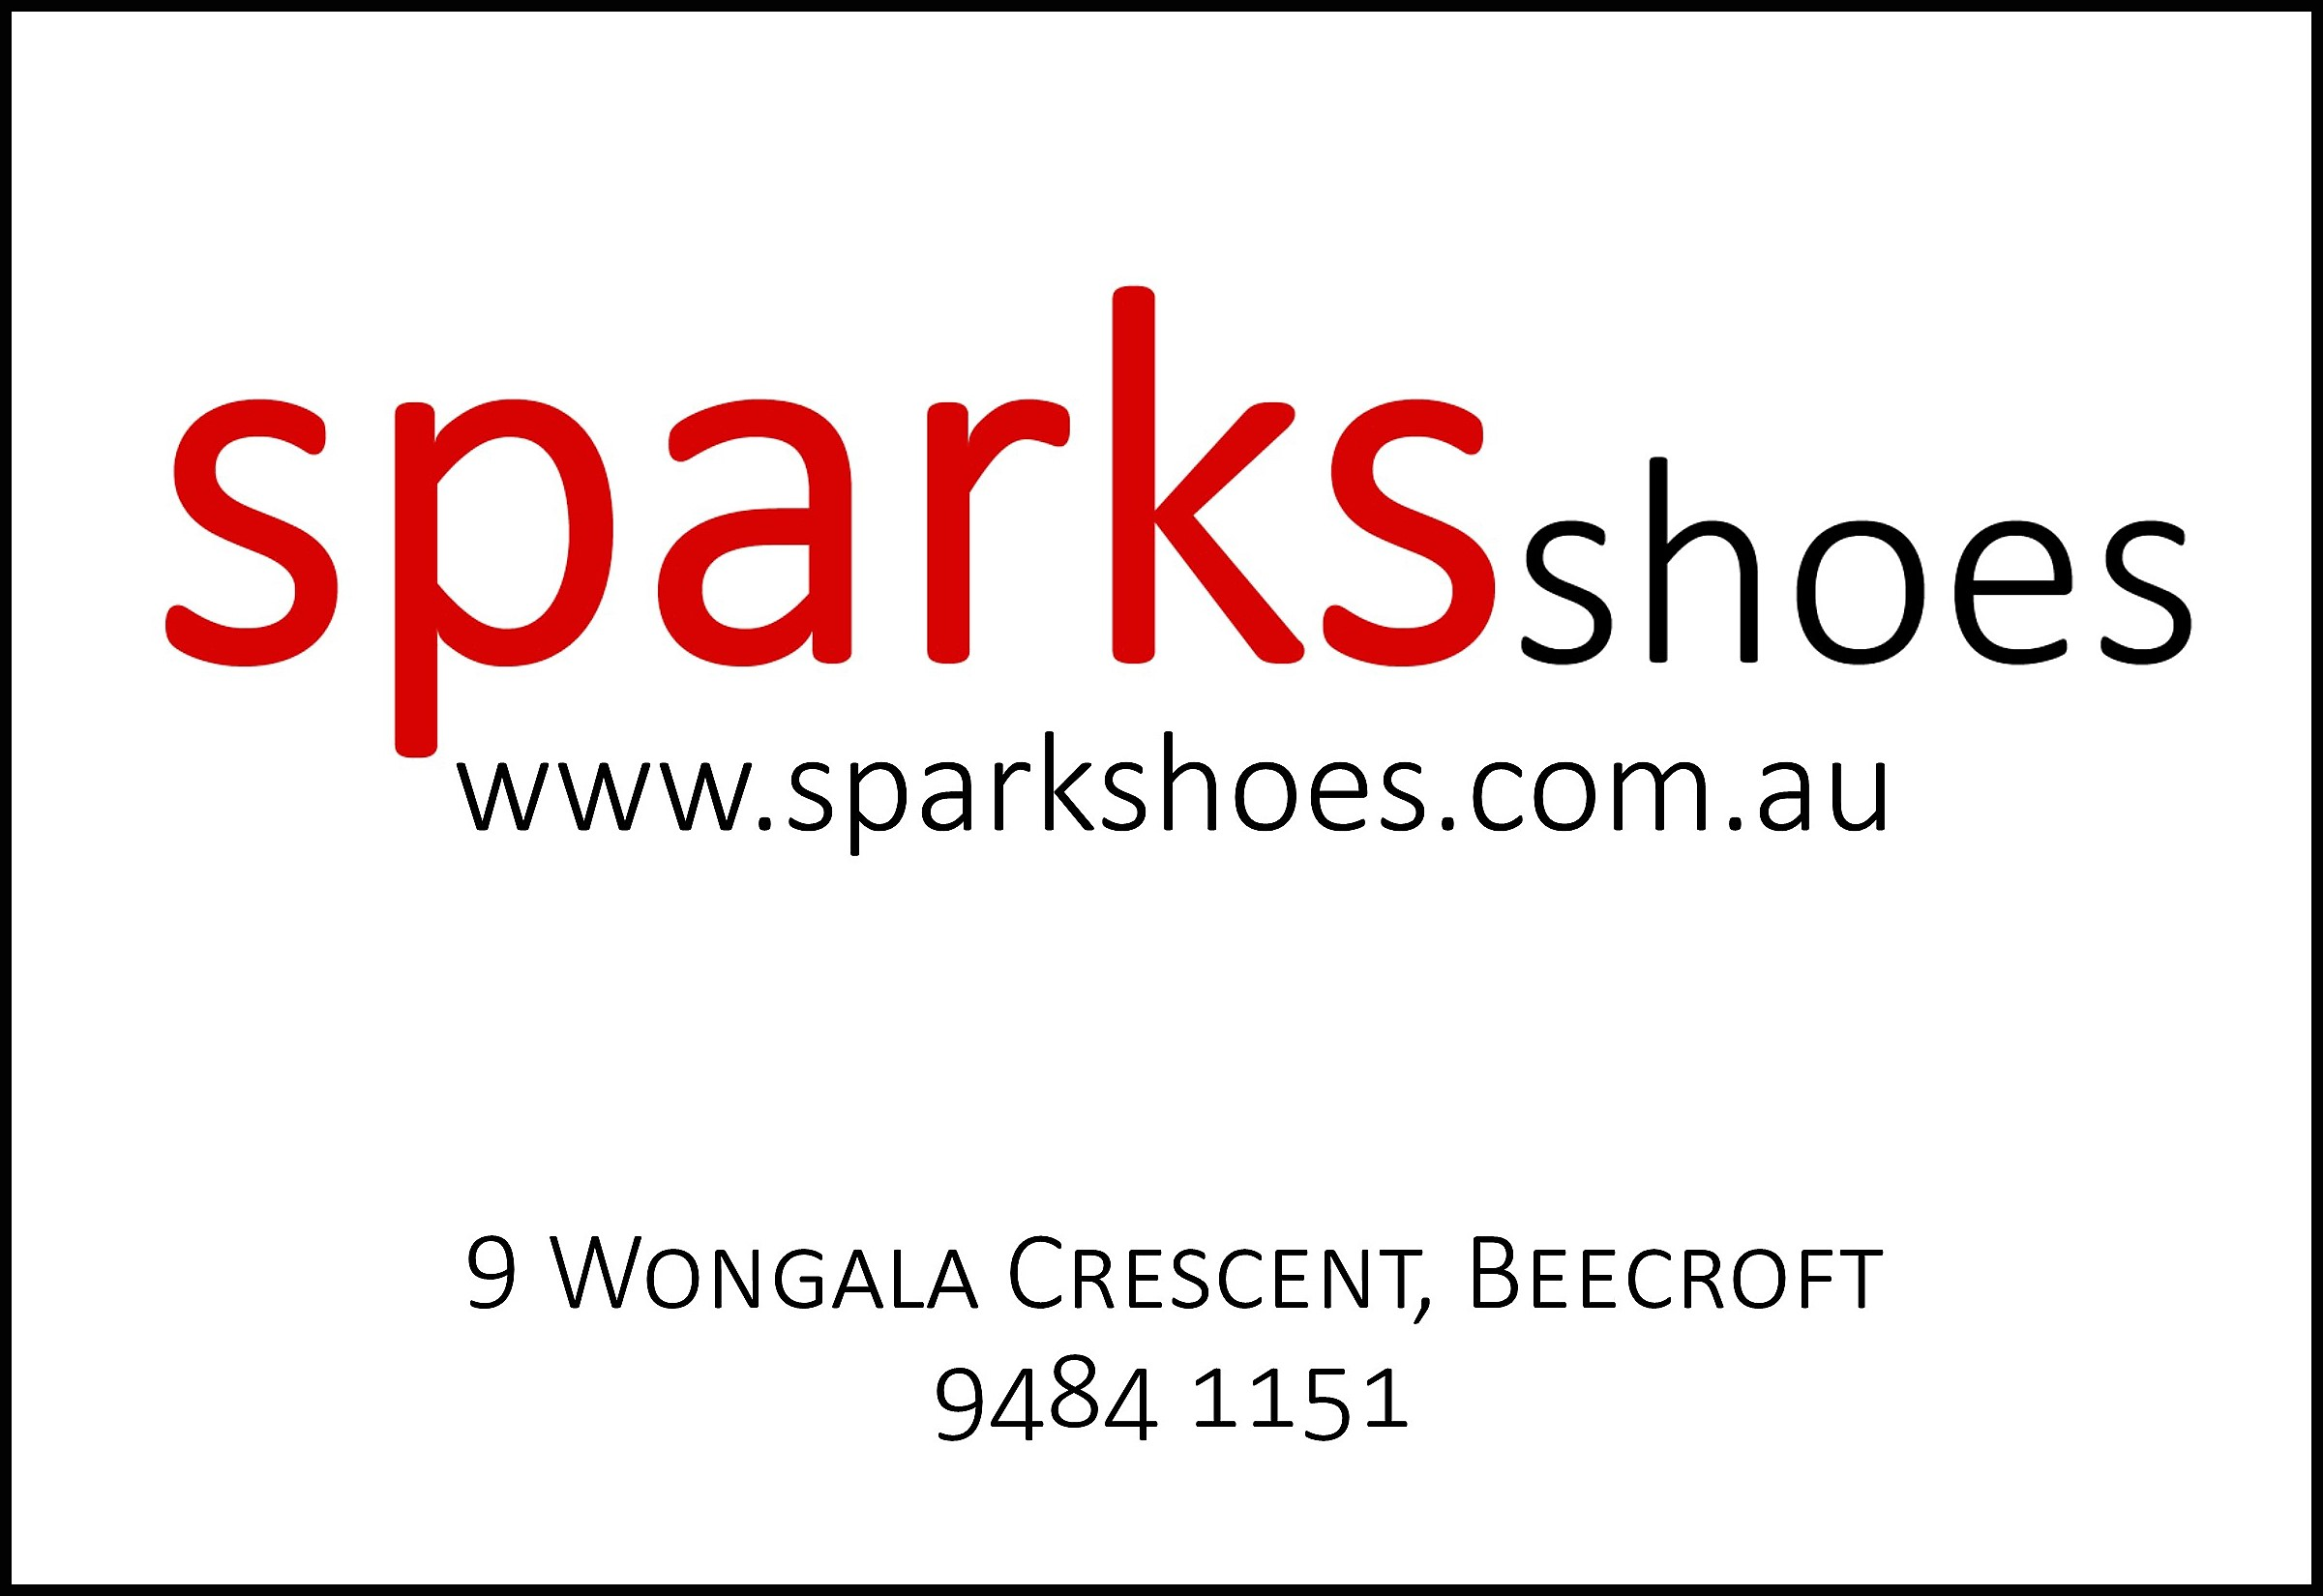 Sparks Shoes